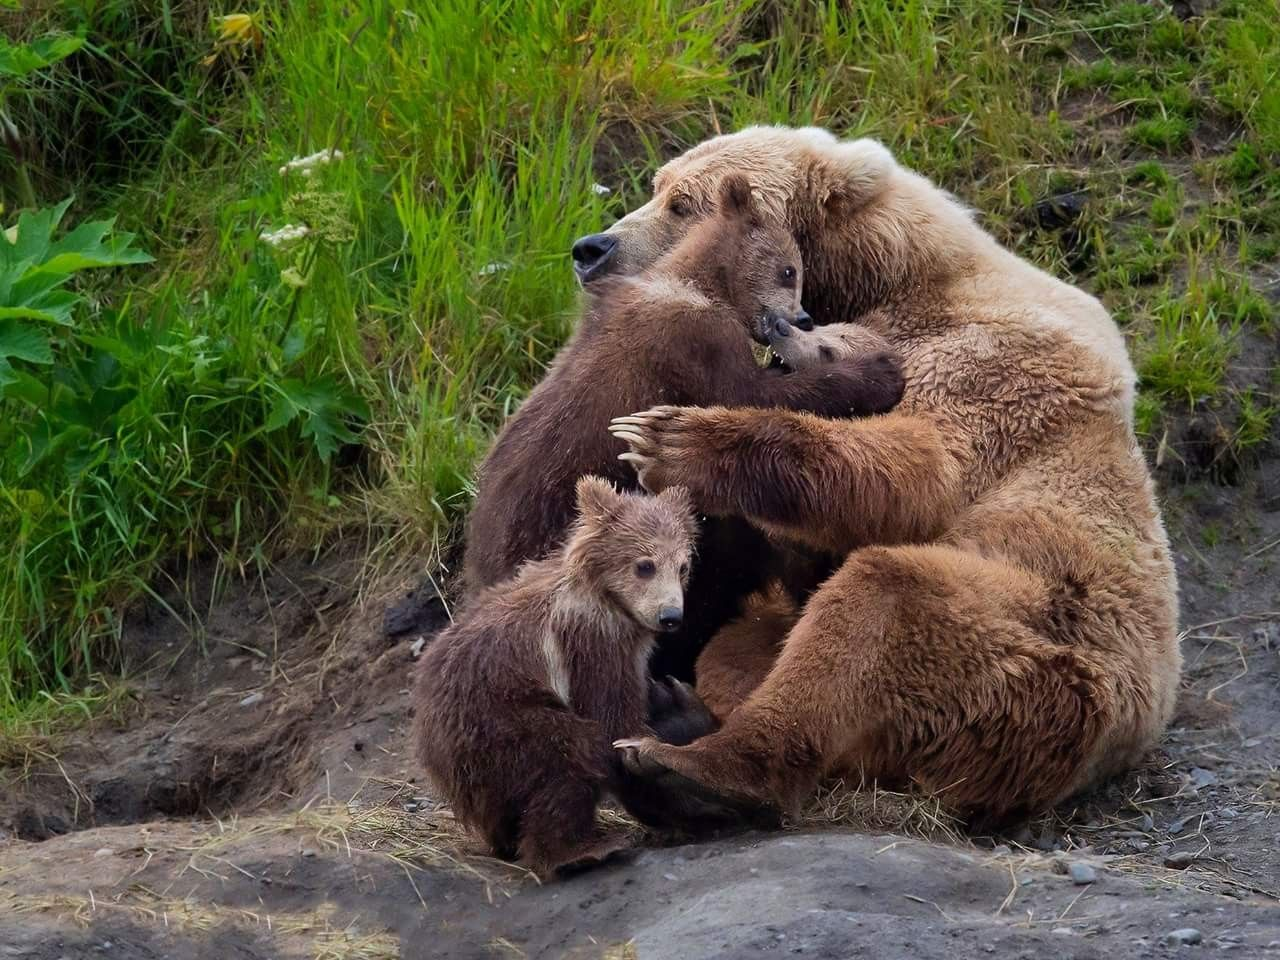 """""""Mamma"""" with her paws full of love! 😍 Mamma is an older bear that everyone thought was past her cub bearing years. She surprised everyone this summer with triplets! Wenona Suydam, Kodiak AK"""